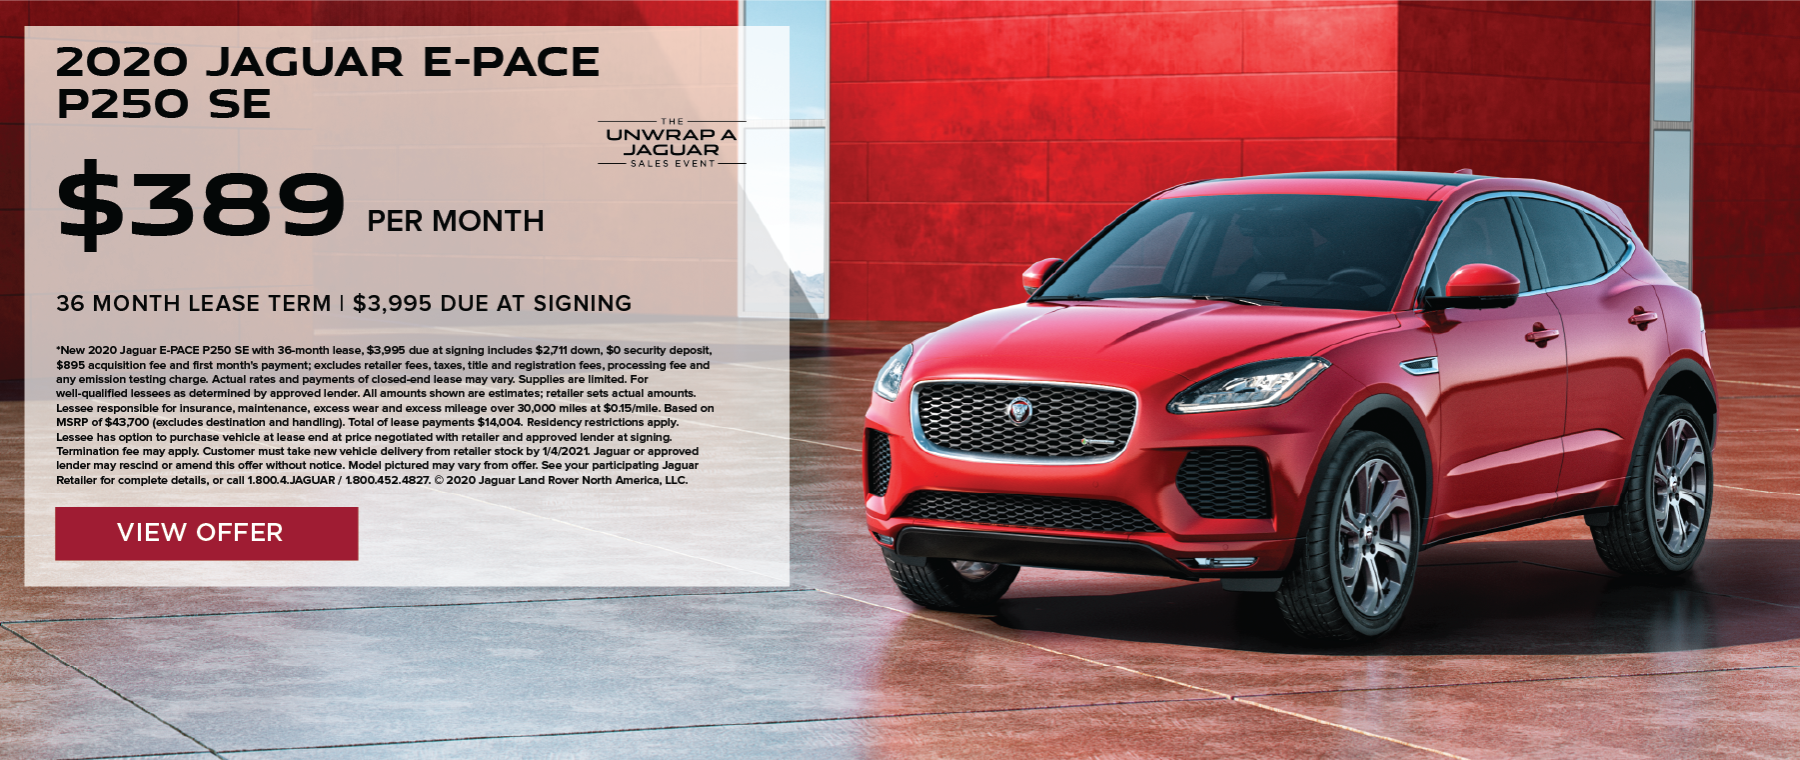 2020 JAGUAR E-PACE P250 SE. $389 PER MONTH. 36 MONTH LEASE TERM. $3,995 CASH DUE AT SIGNING. $0 SECURITY DEPOSIT. 10,000 MILES PER YEAR. EXCLUDES RETAILER FEES, TAXES, TITLE AND REGISTRATION FEES, PROCESSING FEE AND ANY EMISSION TESTING CHARGE. OFFER ENDS 11/30/2020.